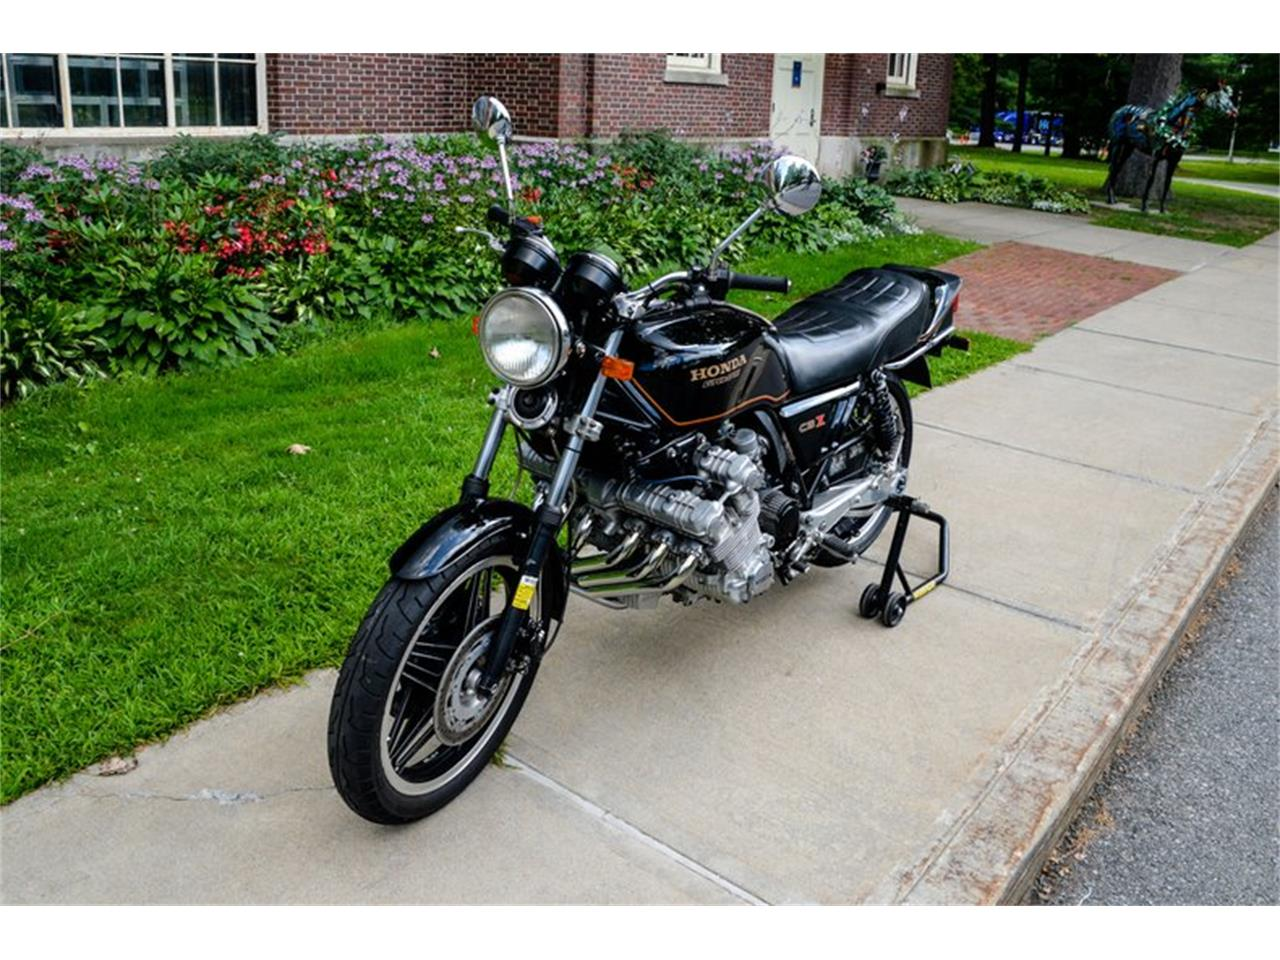 Large Picture of '79 Honda Motorcycle located in New York - QOQ6